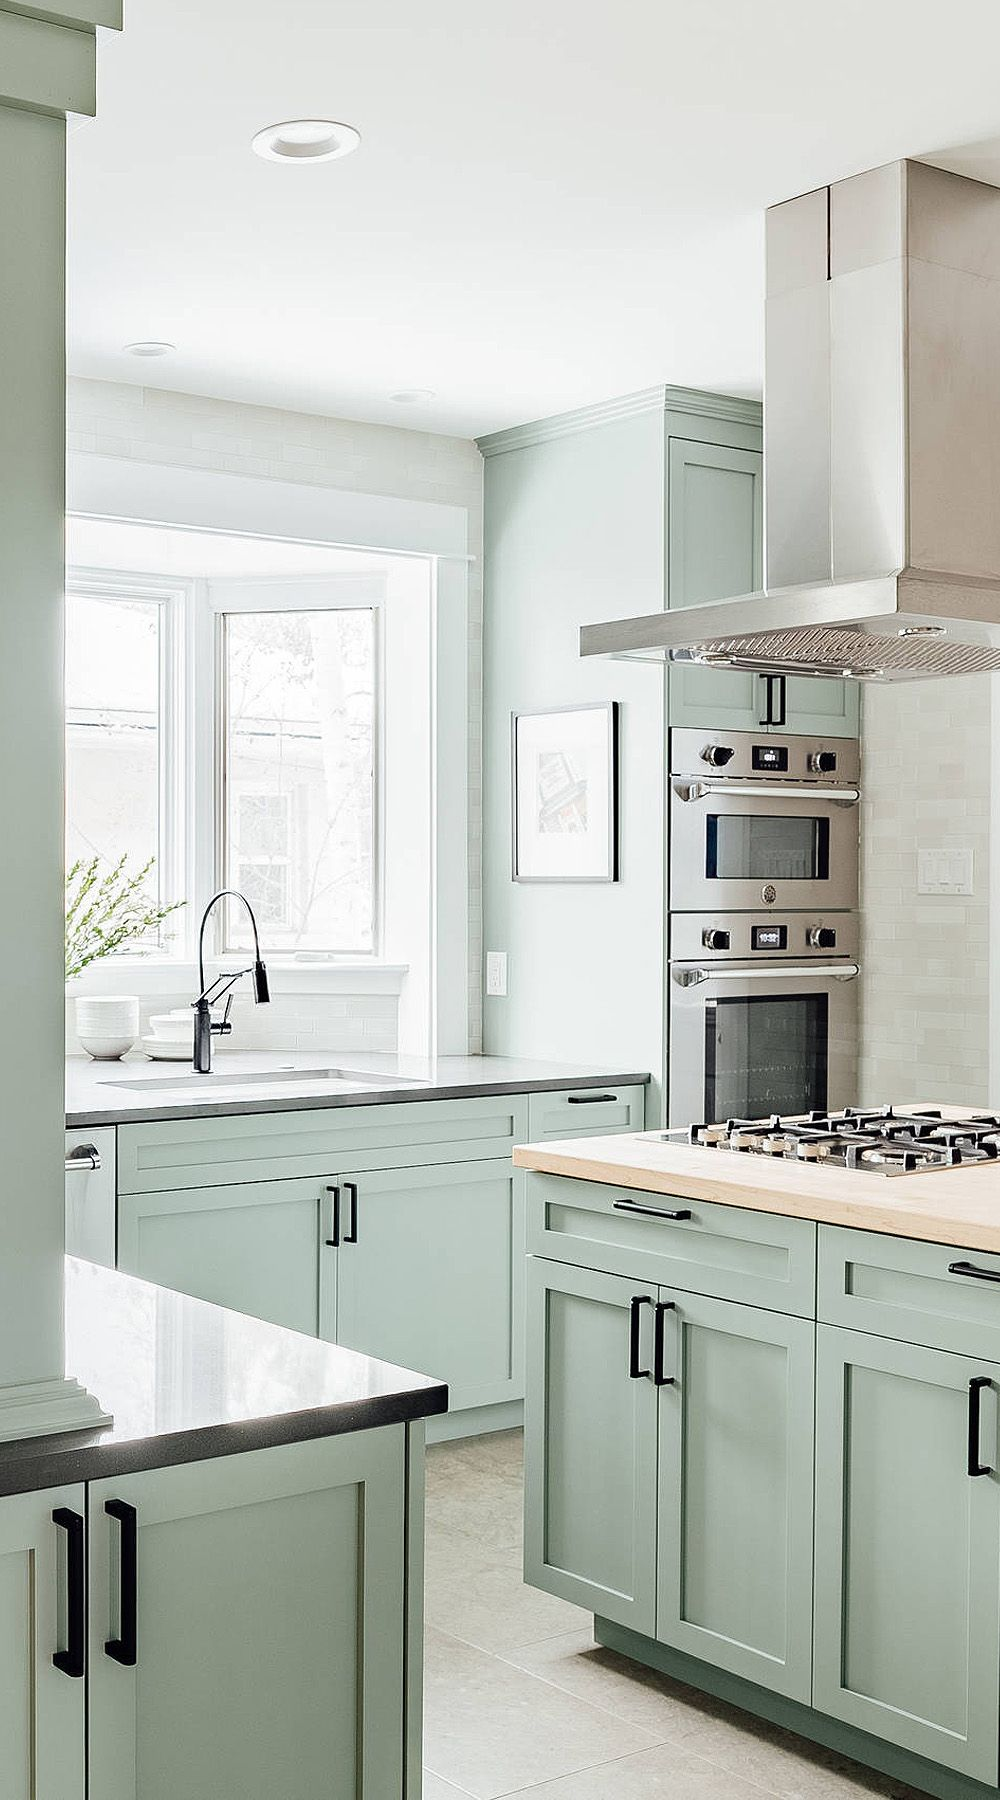 34 Top Green Kitchen Cabinets Good For Kitchen Get Ideas Green Kitchen Cabinets Grey Kitchen Walls White Cabinets Kitchen Cabinets Grey And White